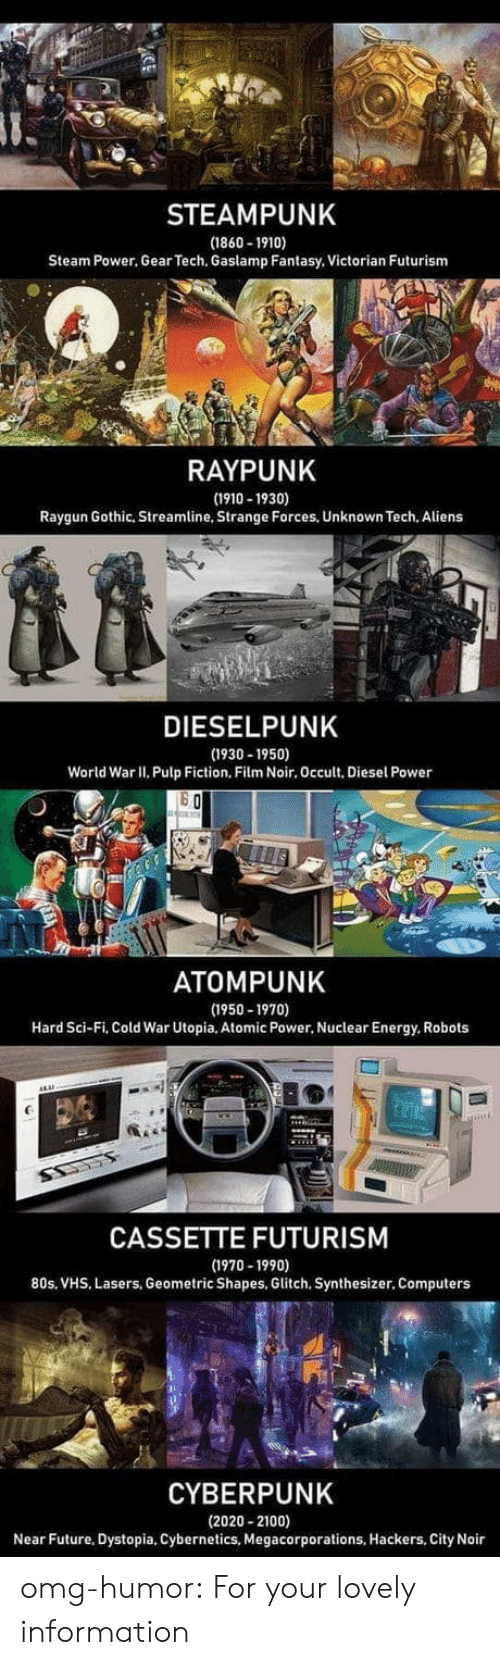 Victorian: STEAMPUNK  (1860-1910)  Steam Power, Gear Tech, Gaslamp Fantasy, Victorian Futurism  RAYPUNK  (1910-1930)  Raygun Gothic, Streamline, Strange Forces, Unknown Tech. Aliens  DIESELPUNK  (1930-1950)  World War II. Pulp Fiction, Film Noir, Occult, Diesel Power  ATOMPUNK  (1950-1970)  Hard Sci-Fi, Cold War Utopia, Atomic Power, Nuclear Energy, Robots  CASSETTE FUTURISM  (1970-1990)  80s, VHS, Lasers, Geometric Shapes, Glitch, Synthesizer. Computers  CYBERPUNK  (2020-2100)  Near Future, Dystopia, Cybernetics, Megacorporations, Hackers, City Noir omg-humor:  For your lovely information